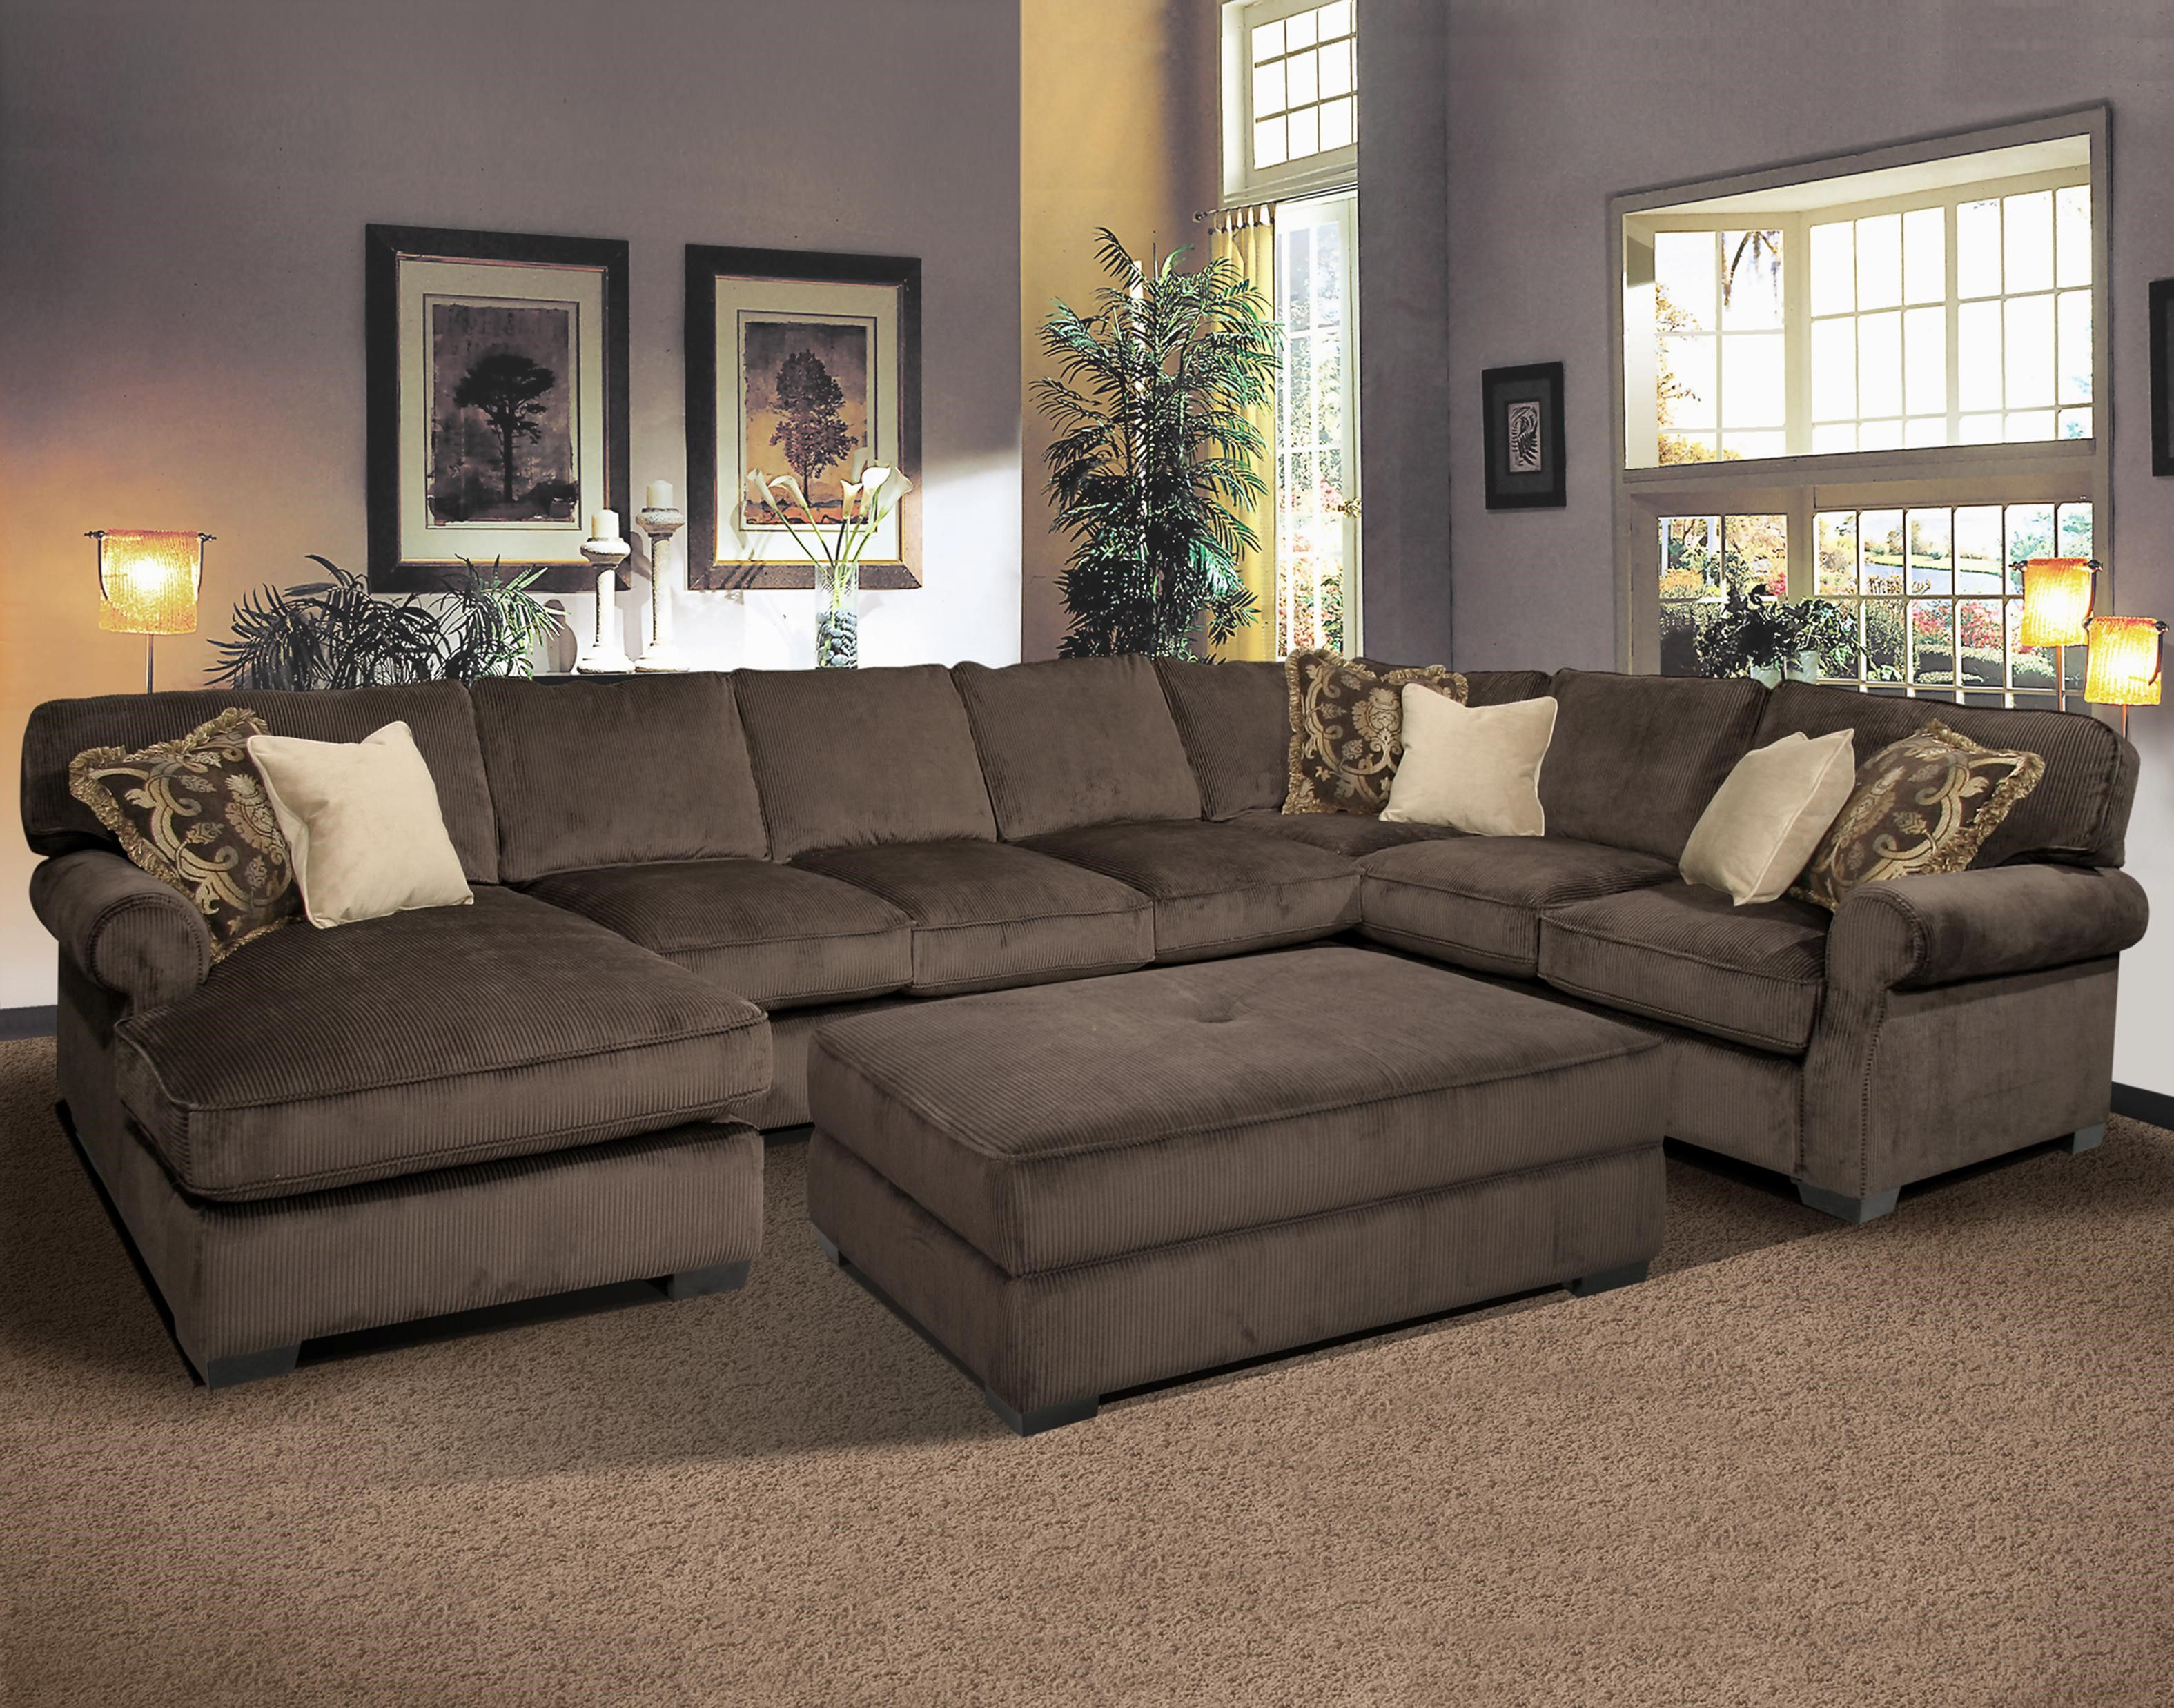 minneapolis midwest minnesota sale design recliners room very sofa mn fixtures powerful sleeper closeouts stores in sofas leather chaise are sectional living